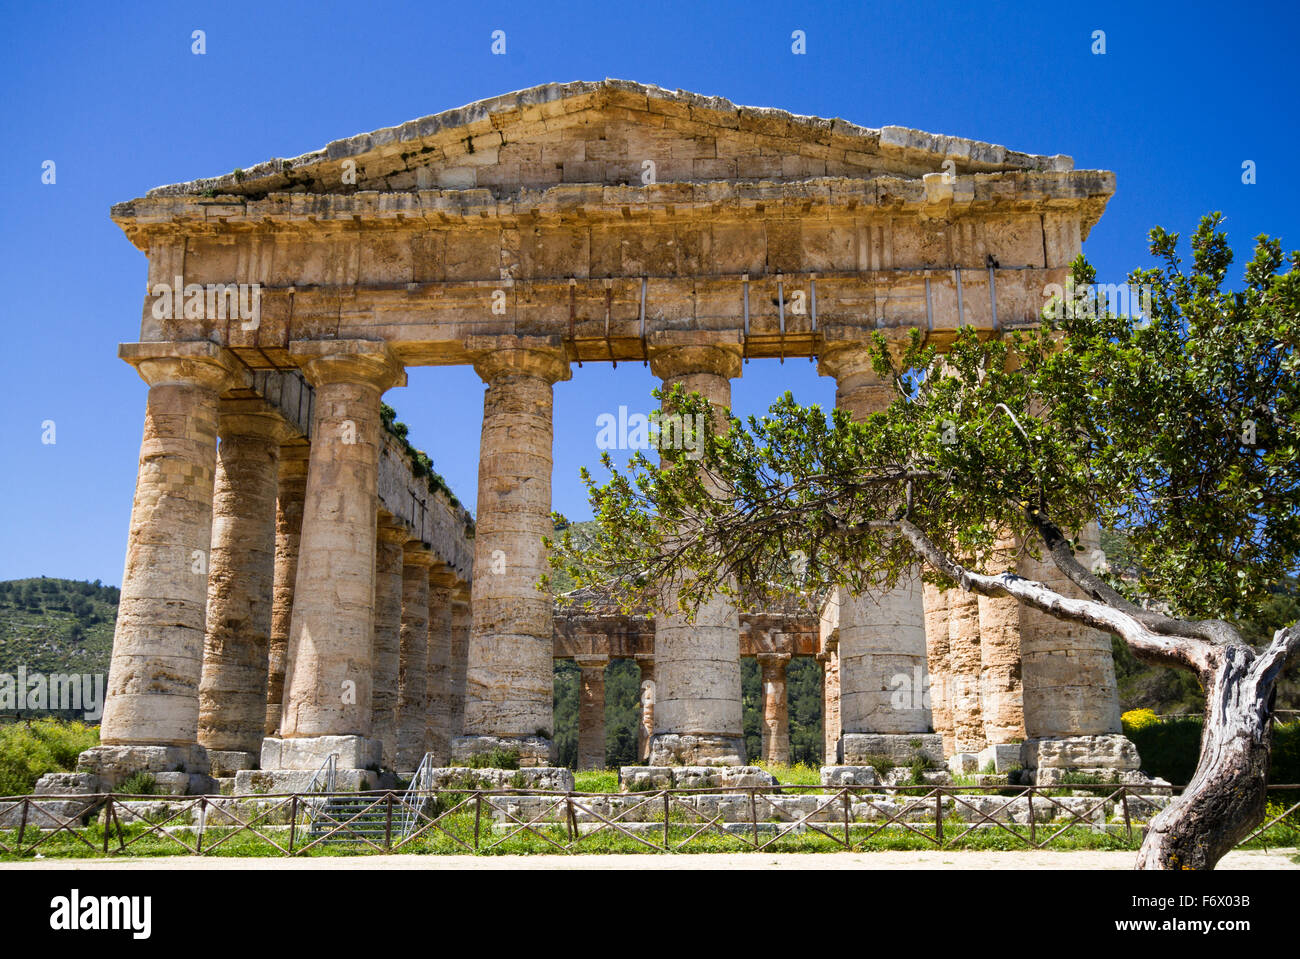 Ancient Greek Temple of Segesta, Sicily, Italy - Stock Image